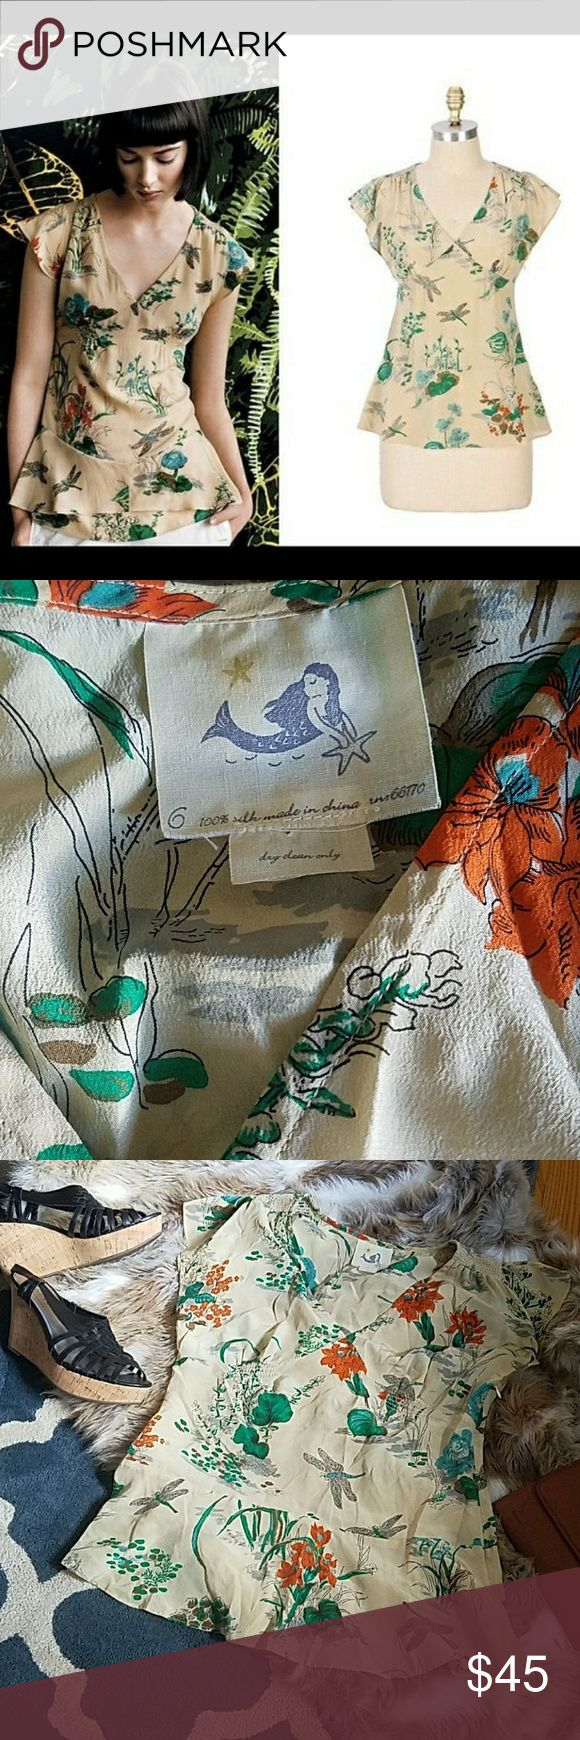 """ANTHROPOLOGIE MERMAID LABEL DRAGONFLY SILK TOP Emblems of summer illustrate tea-stained silk crepe. Sketchbook-style print of flowers, leaves and dragonflies is done in orange, light blue, jade green and grey on a pale beige background. Lightweight, delicate fabric. V-neckline. Empire waist, a-line cut through the body. Smocked gathers at the shoulders, under the bust and at center back. Unlined, closes with side zip. 100% silk. Underarm across 16"""". Length 25"""". Excellent condition (EUC)…"""